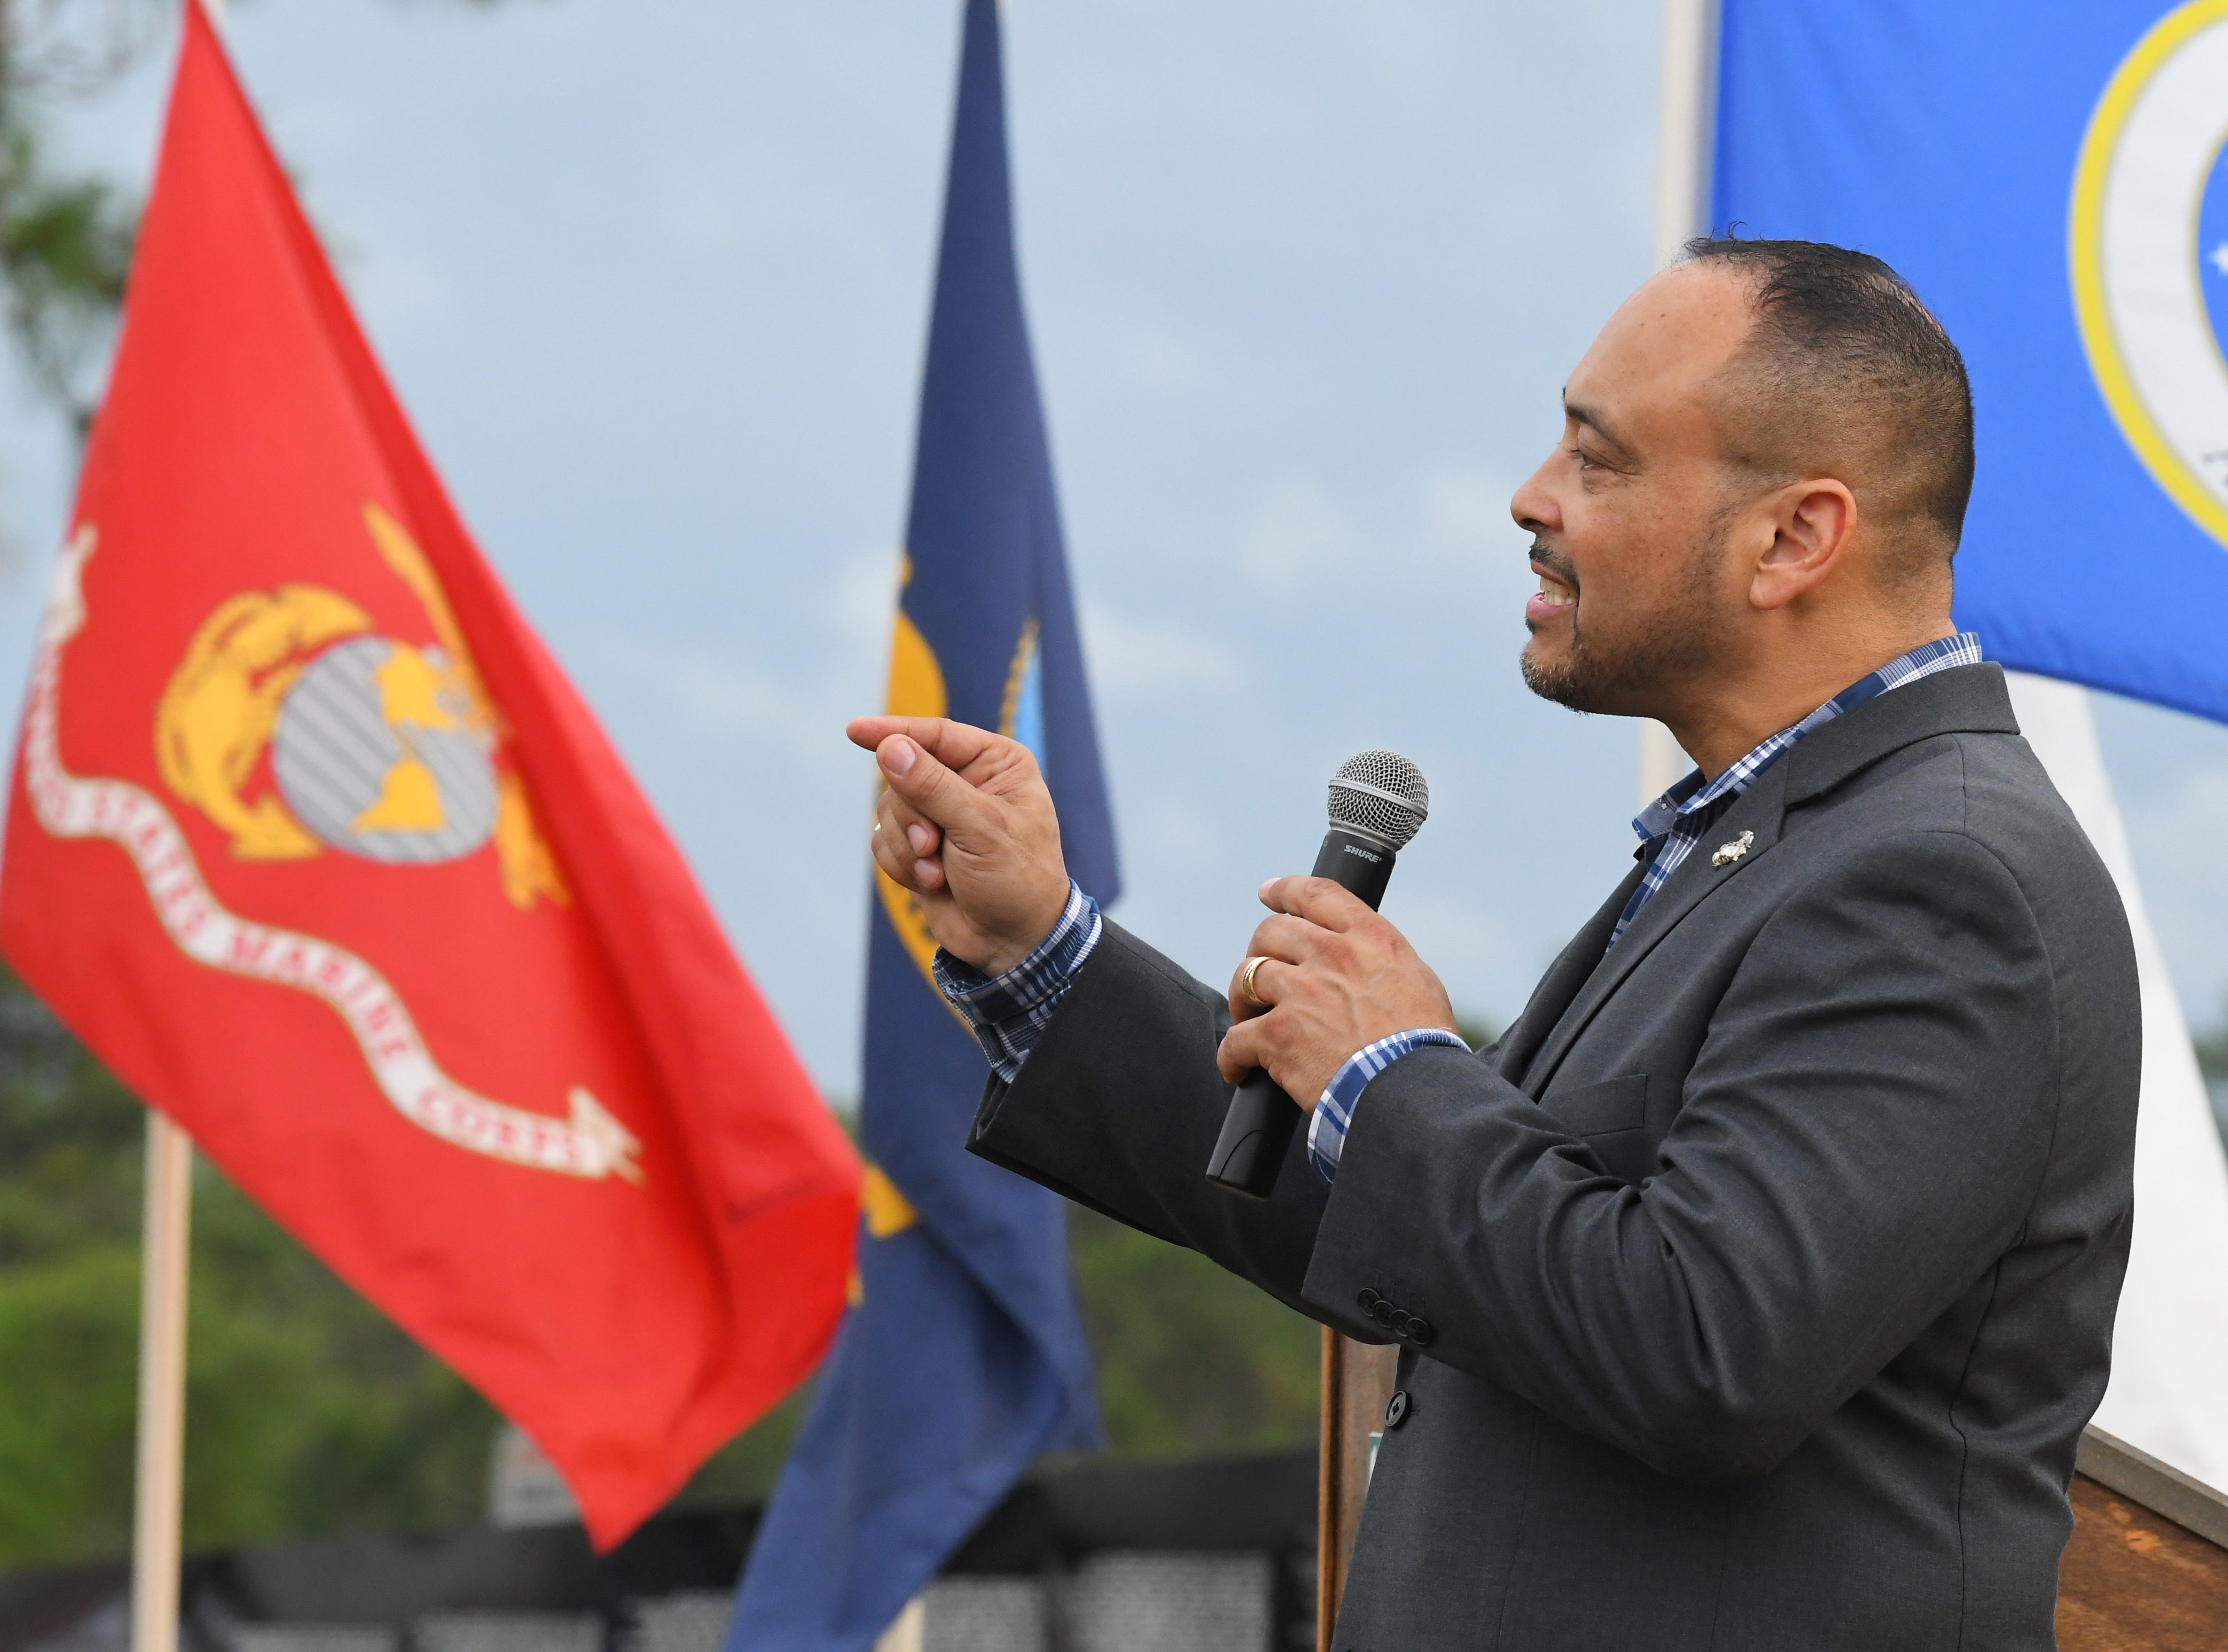 Rob Medina, of the office of Congressman Bill Posey, served in the Marine Corps, and gave a speech at the gathering. Monday's presentation of wreaths and opening ceremony at the Vietnam Traveling Memorial Wall, which will be set up until May 12. It is part of The 32nd Annual Vietnam and All Veterans Reunion, a free event open to the public at Wickham Park in Melbourne May 9-12.